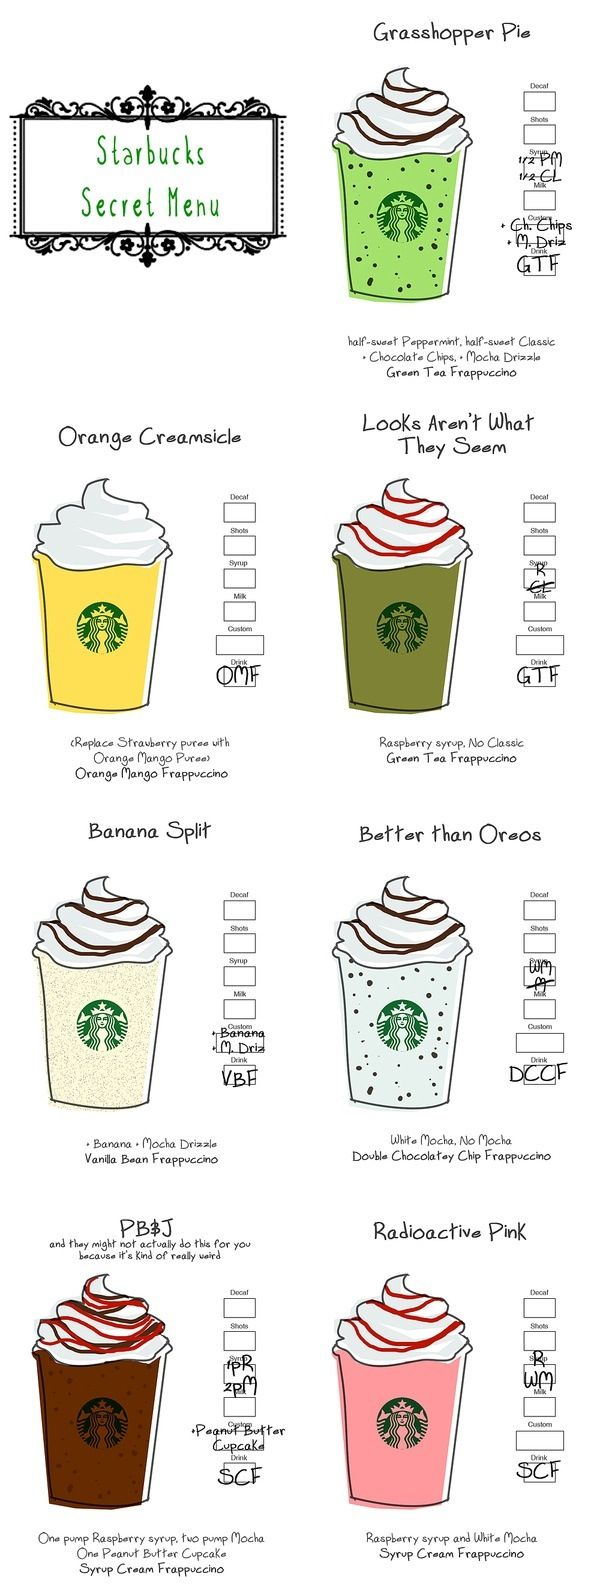 Connu 469 best White Girl Love (aka Starbucks) images on Pinterest  BN04